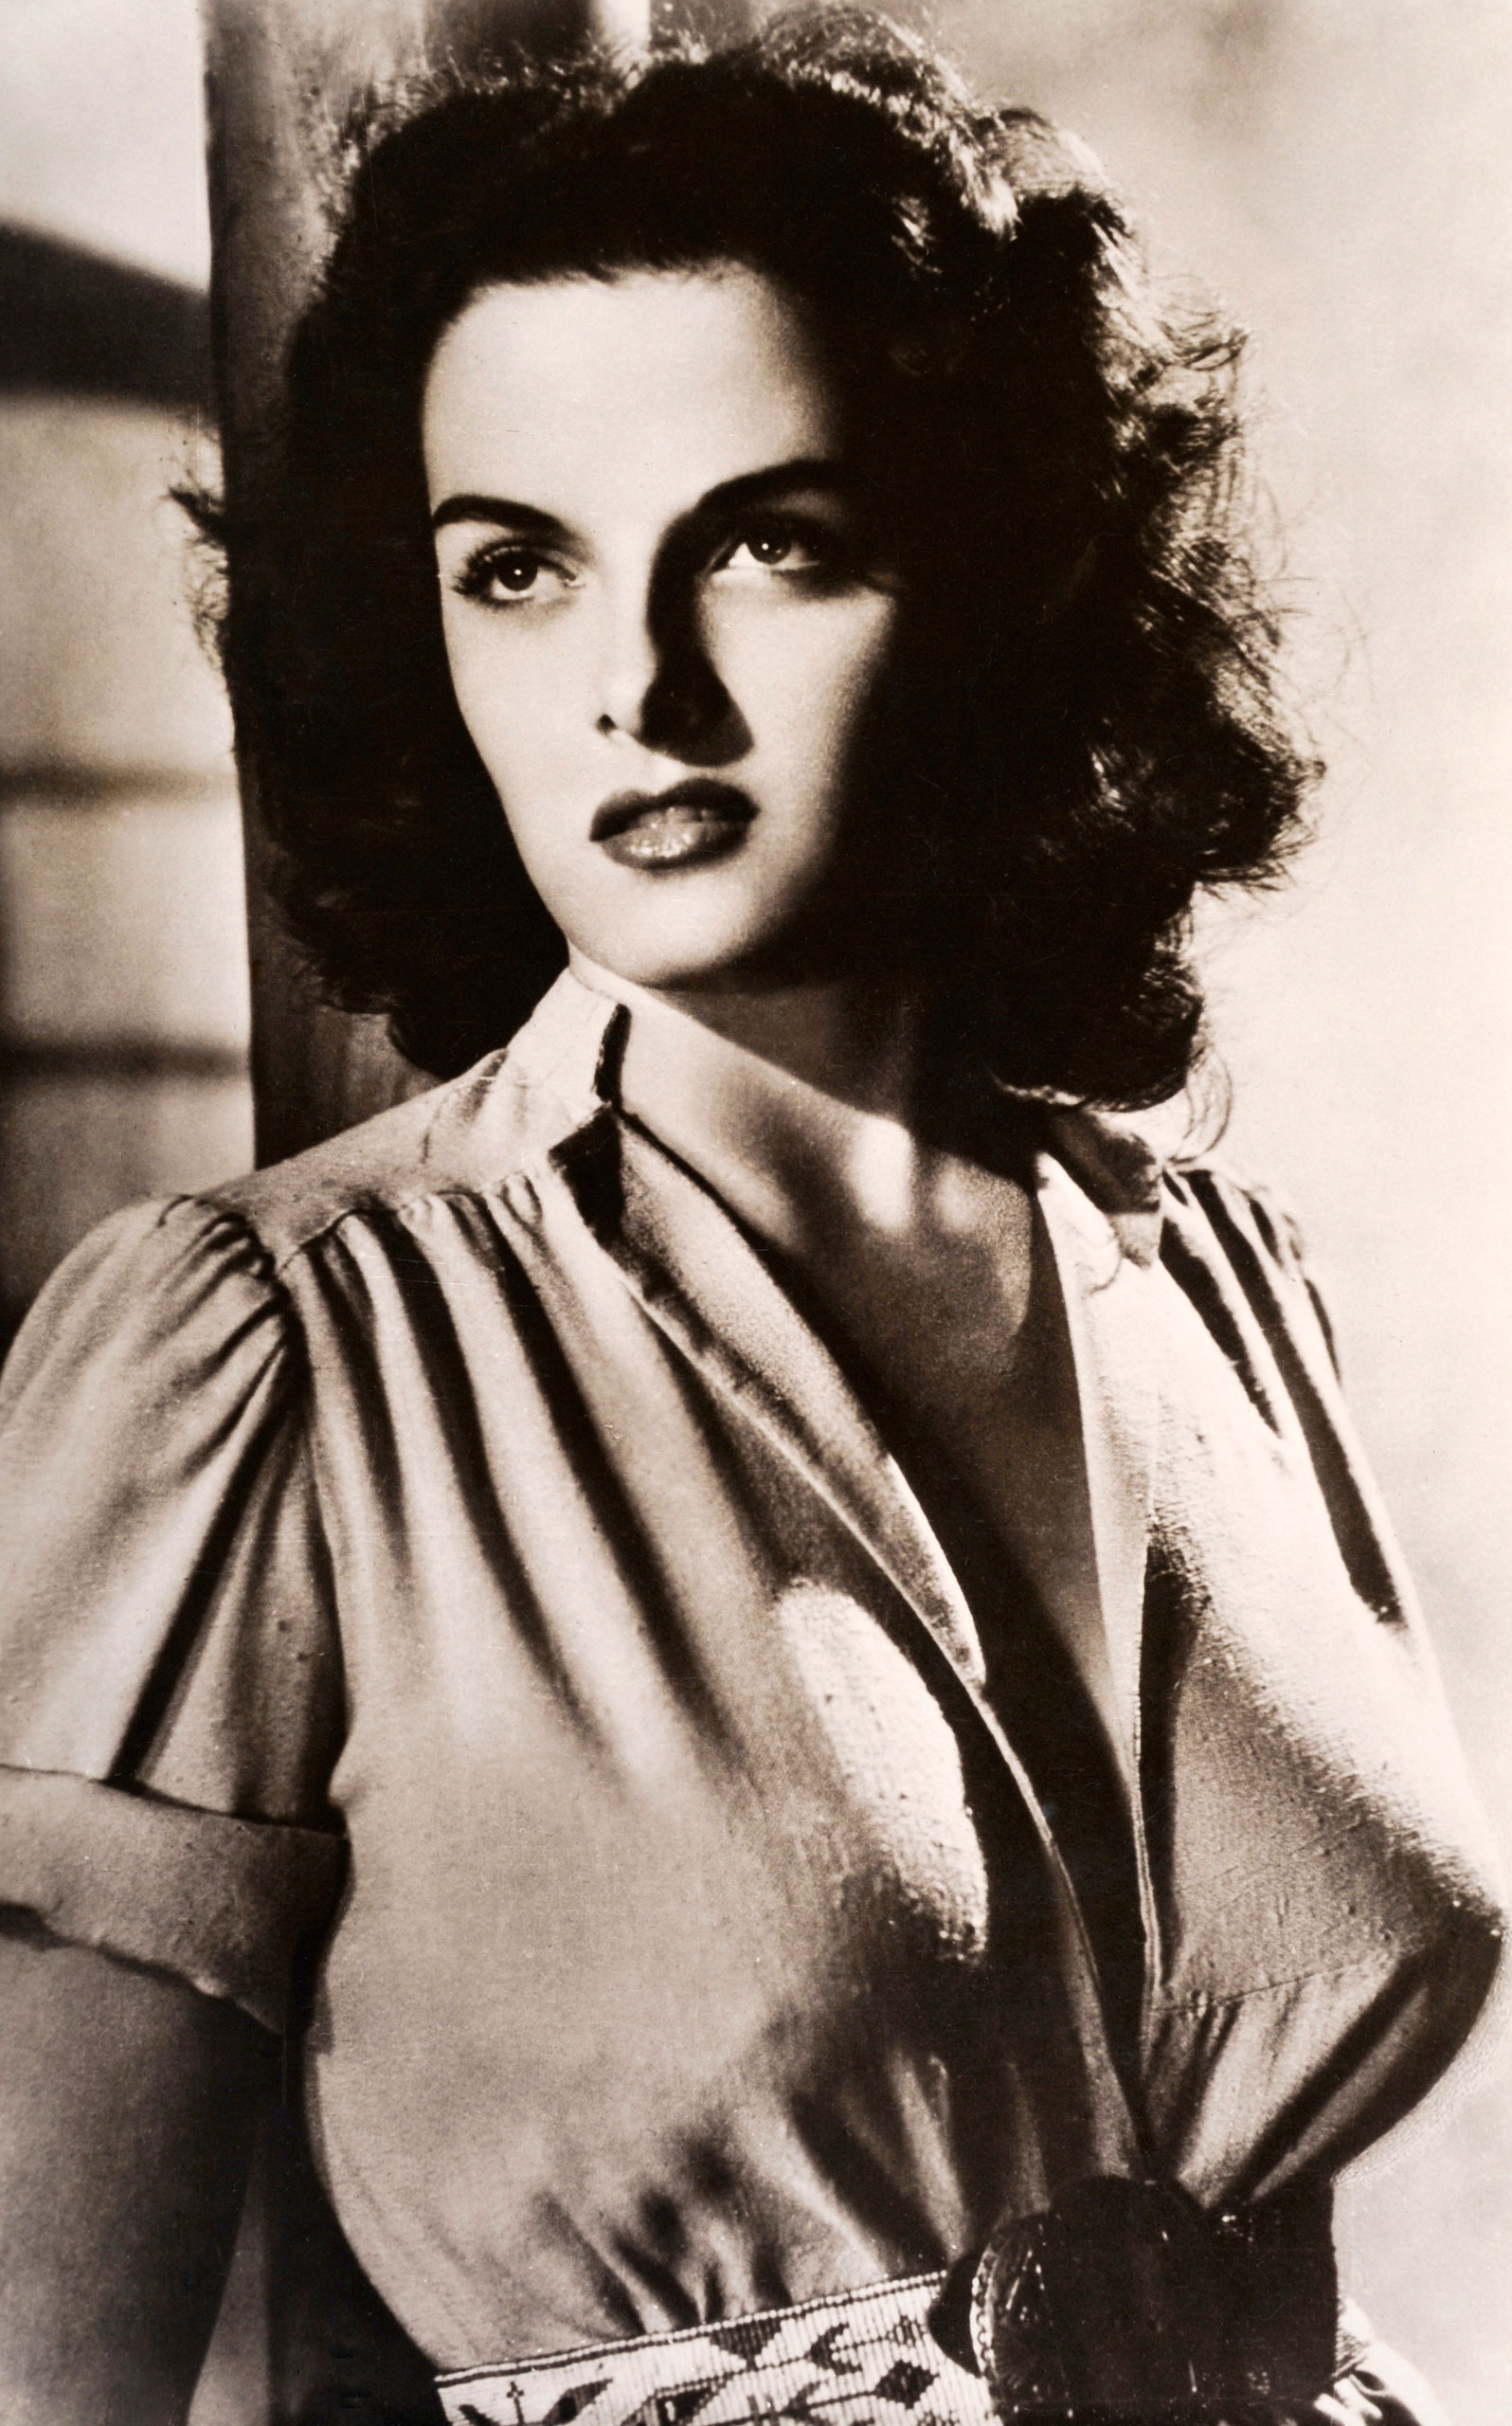 <strong>The Bullet Bra                                   </strong> Popularized by actresses such as Jane Russell (pictured here), Lana Turner and Marilyn Monroe, these conical bras came into style in the 1940s and 50s and gave rise to the famed 'Sweater Girl'.